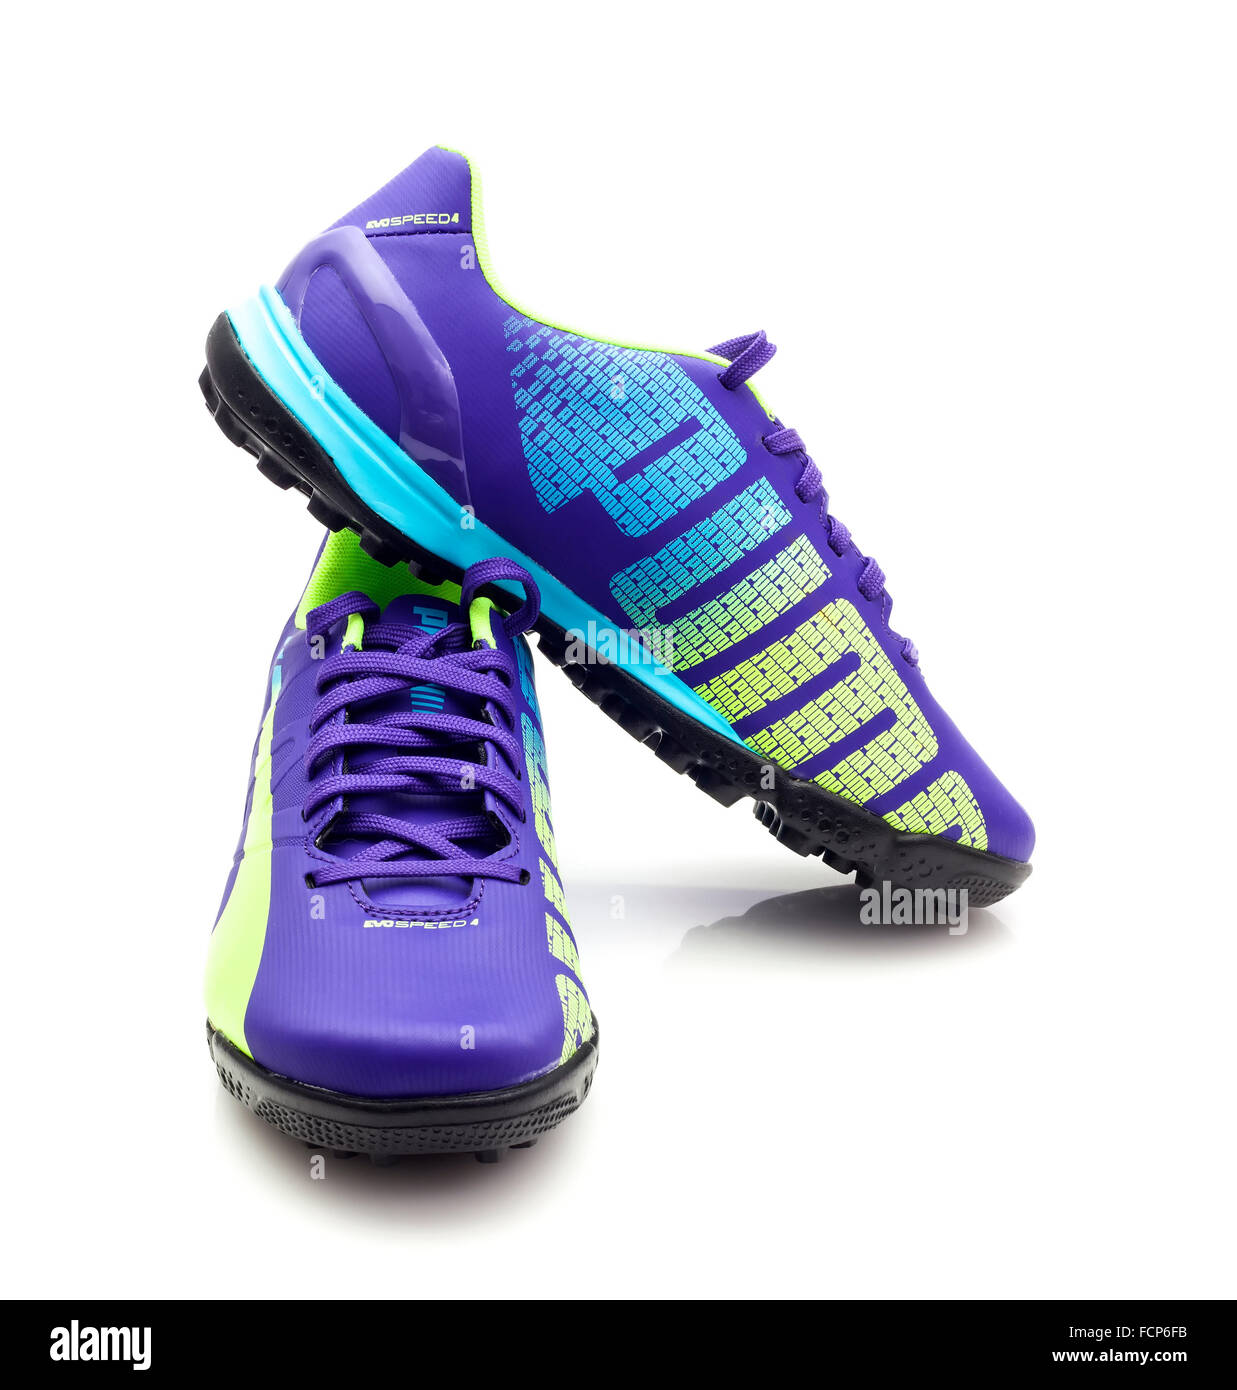 88f986162 White Football Boot Stock Photos & White Football Boot Stock Images ...